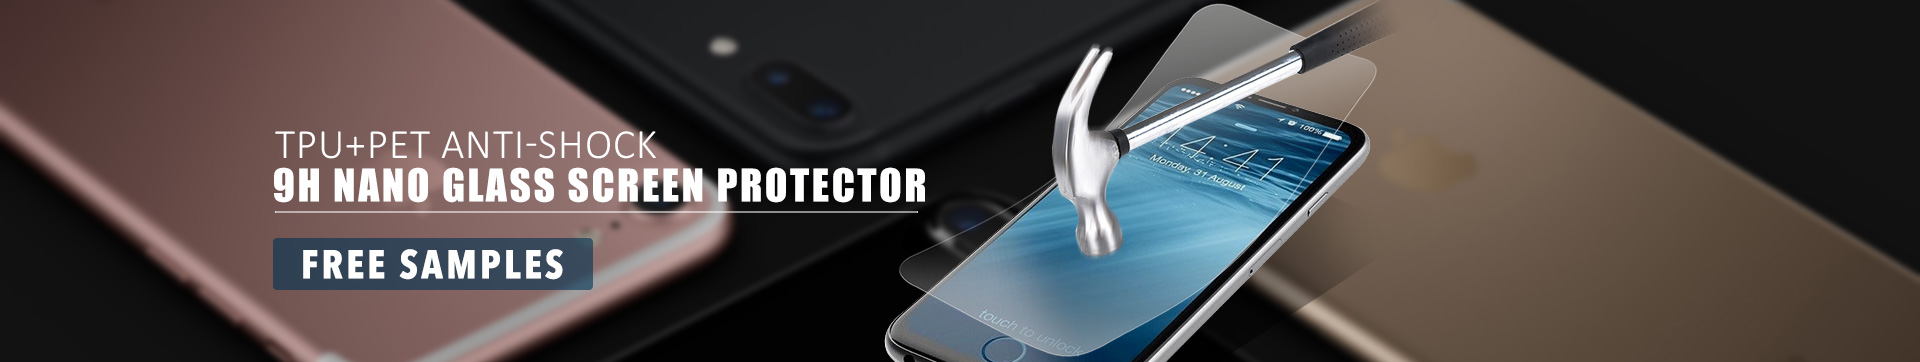 9H Nano Glass Screen Protector